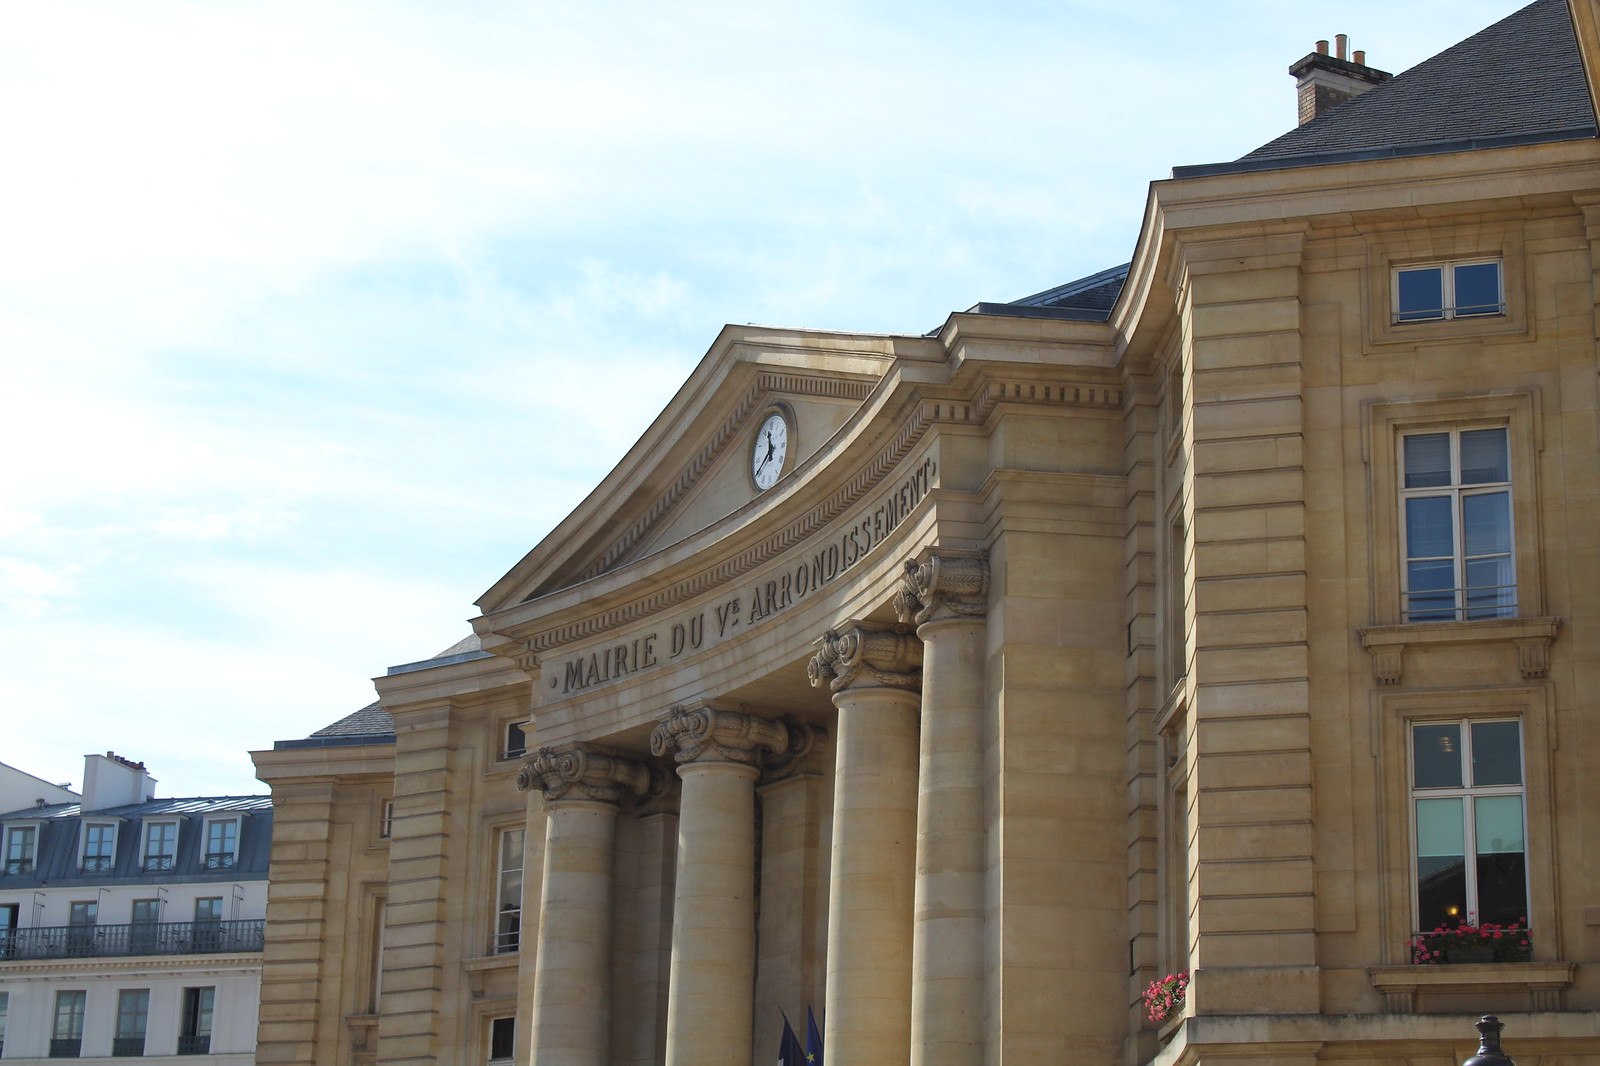 Paris citytrip june14thstudio must visit pantheon mairie V 5e cinquieme arrondisement